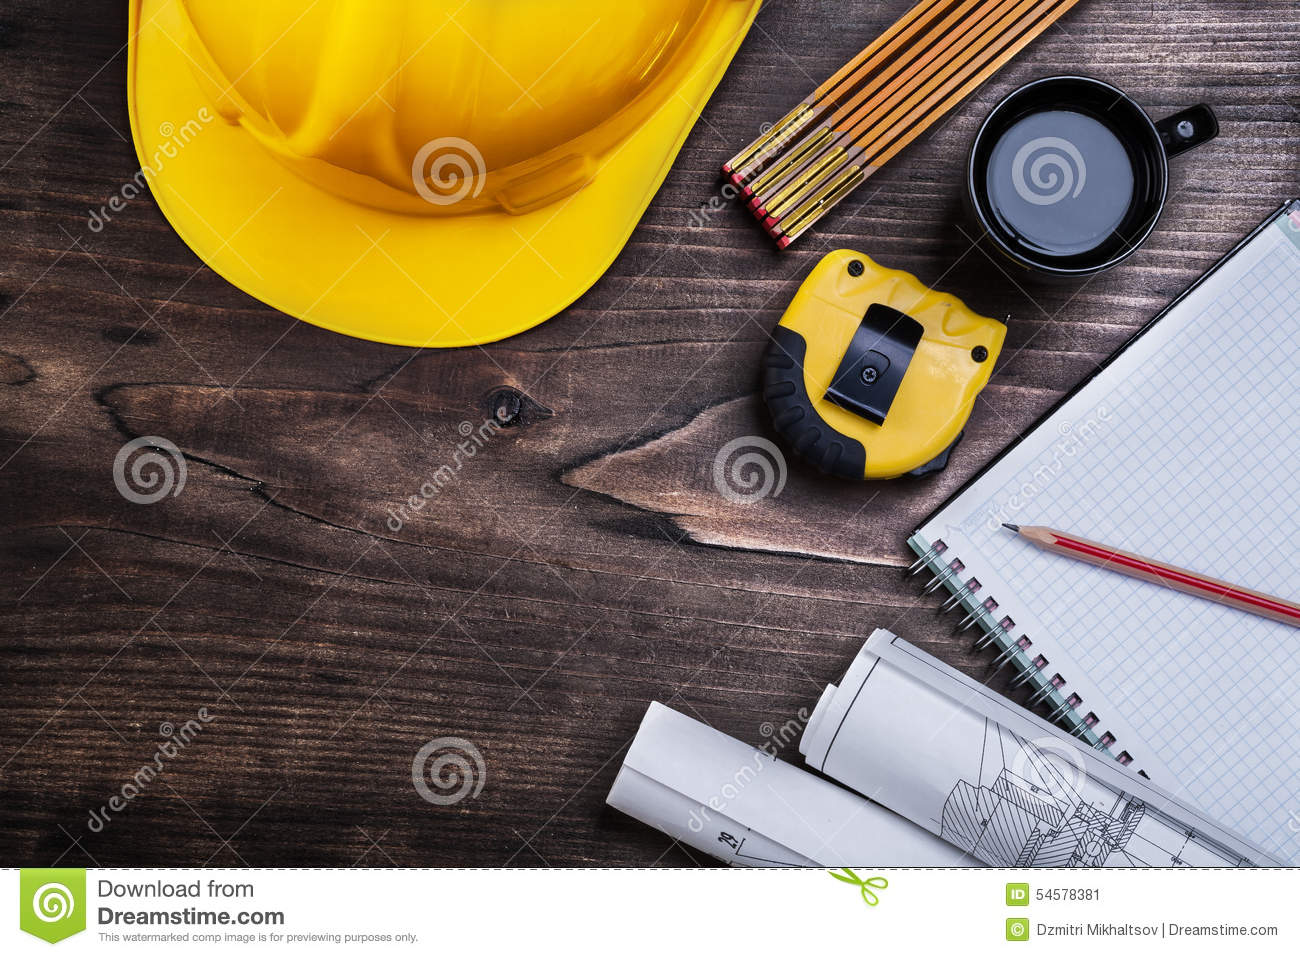 sketch architect house designs html with Blueprints Helmet Meter on 0b29de7709999b42 Architectural Drafting Equipment Architecture Drawing Tools further Blog Post likewise Math Classes Architects College 1107 as well Modern Stables House also Blueprints Helmet Meter.